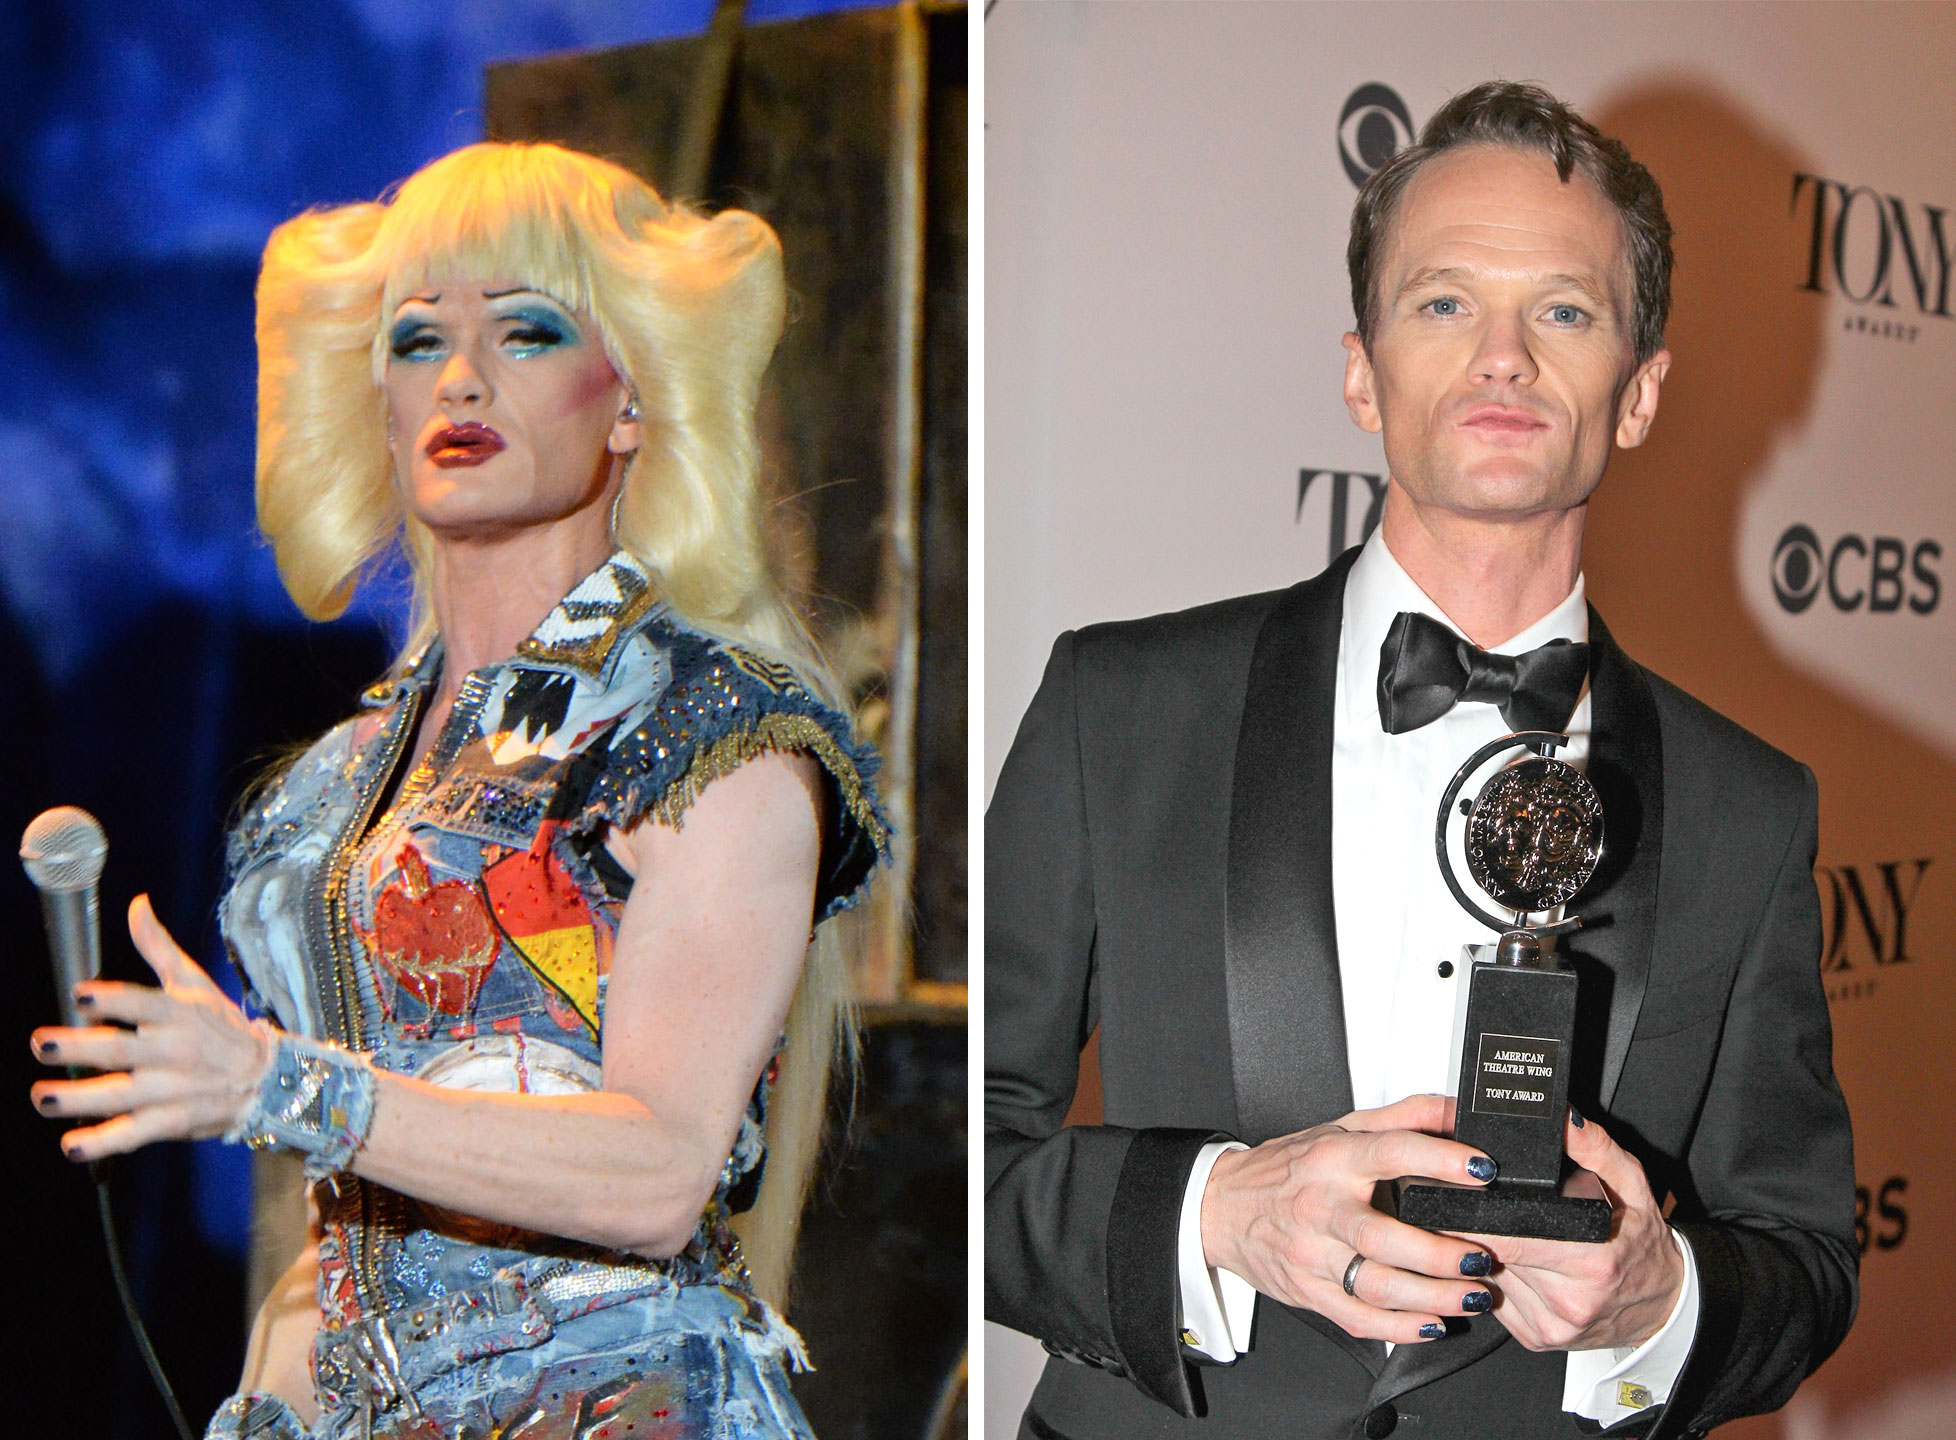 Neil Patrick Harris as Hedwig Robinson in the Broadway adaptation of Hedwig and the Angry Inch